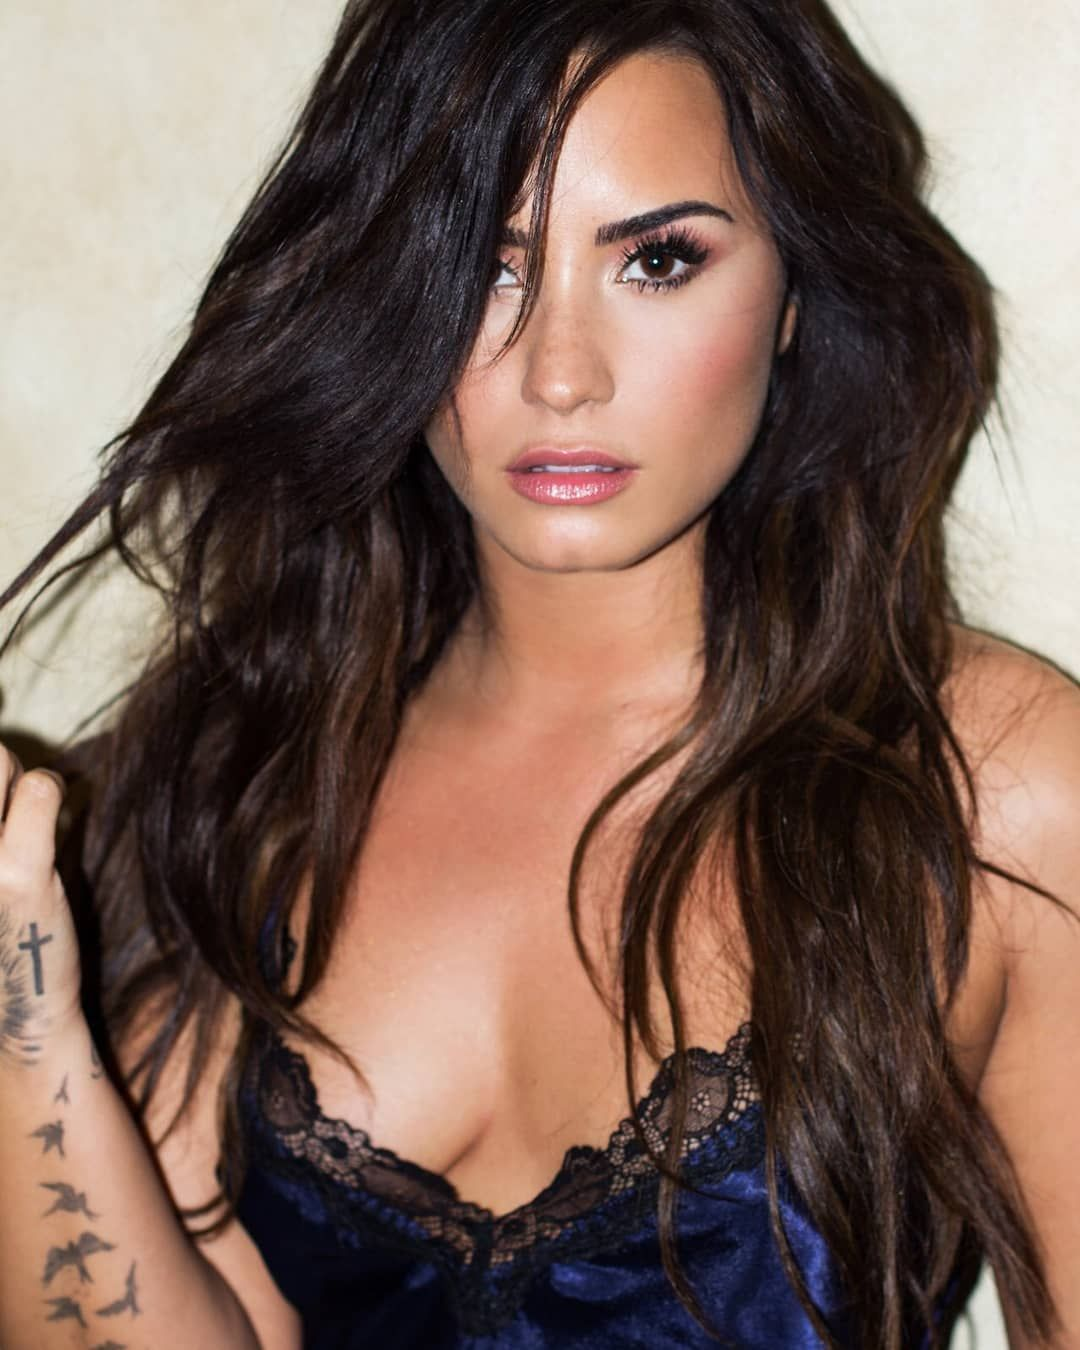 Celebrites Demetria Lovato nudes (44 photos), Sexy, Leaked, Boobs, lingerie 2017